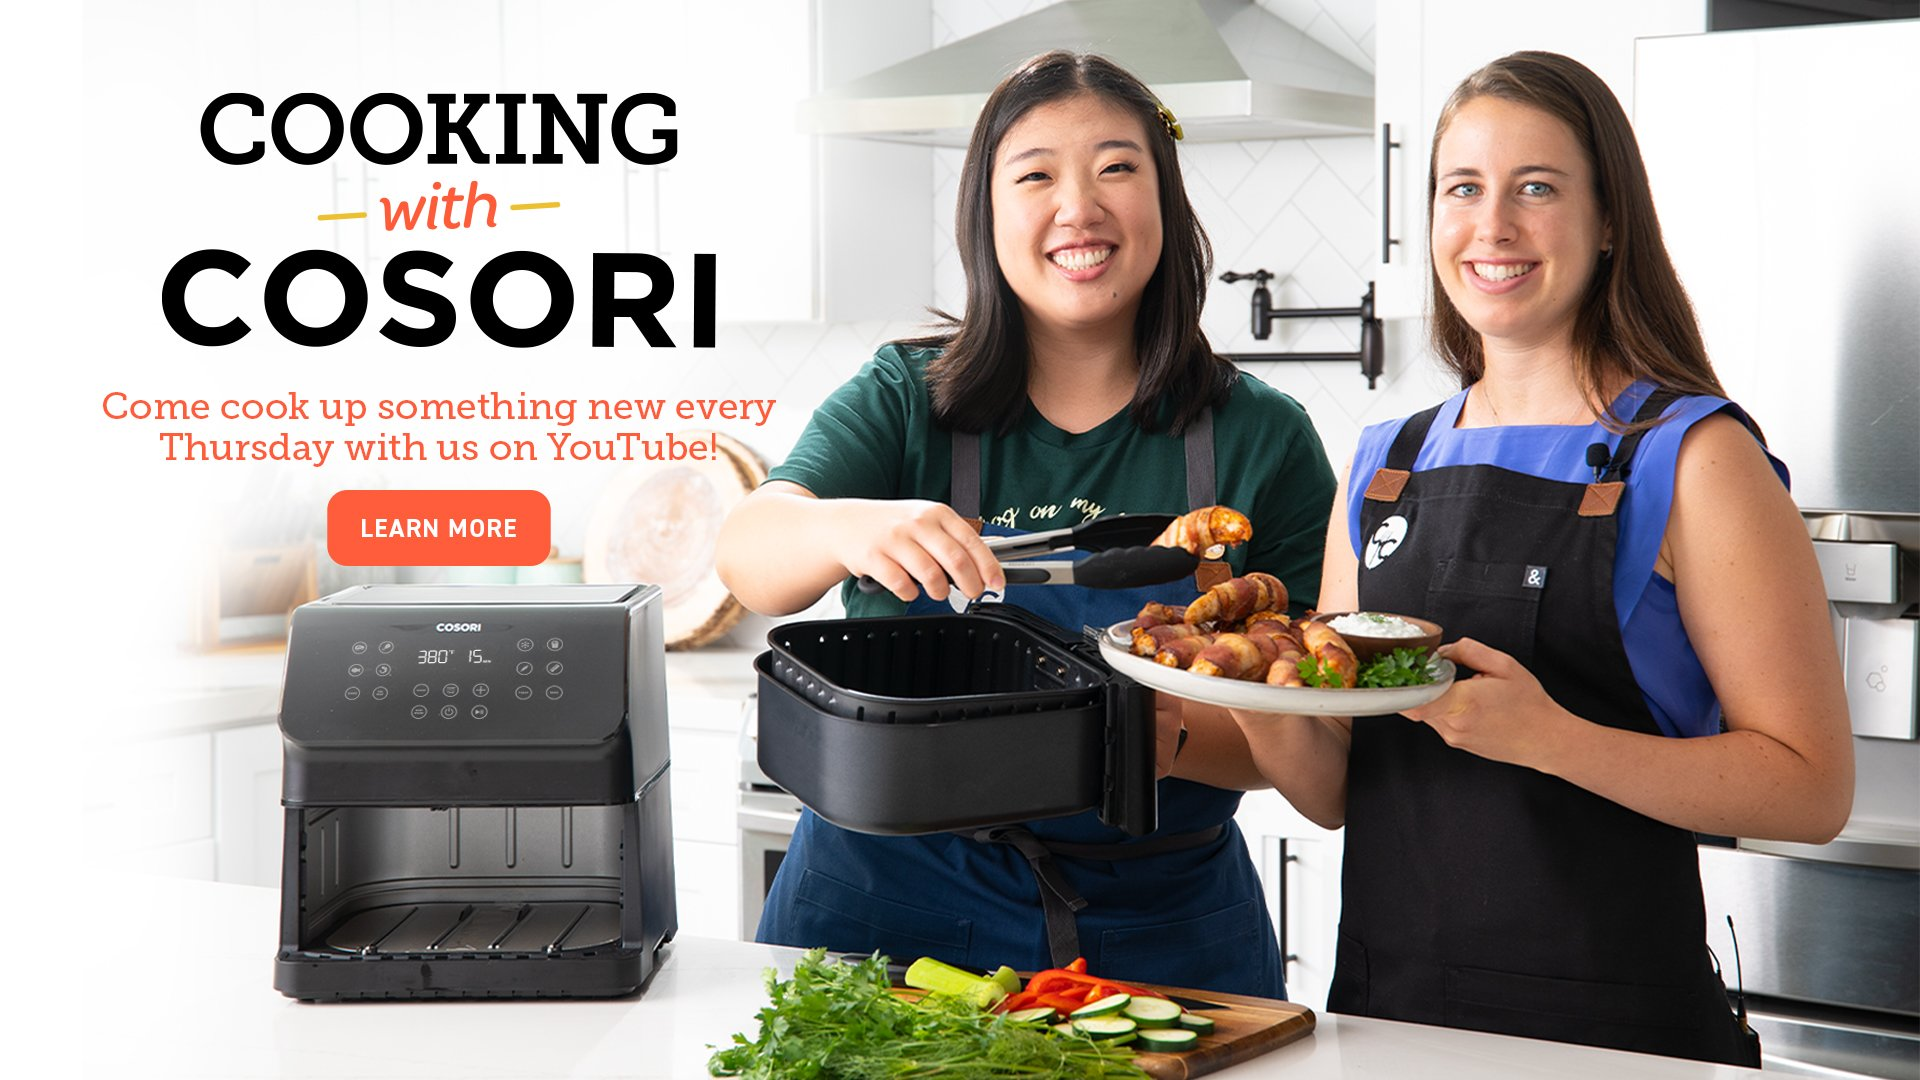 Cooking with Cosori Video Series